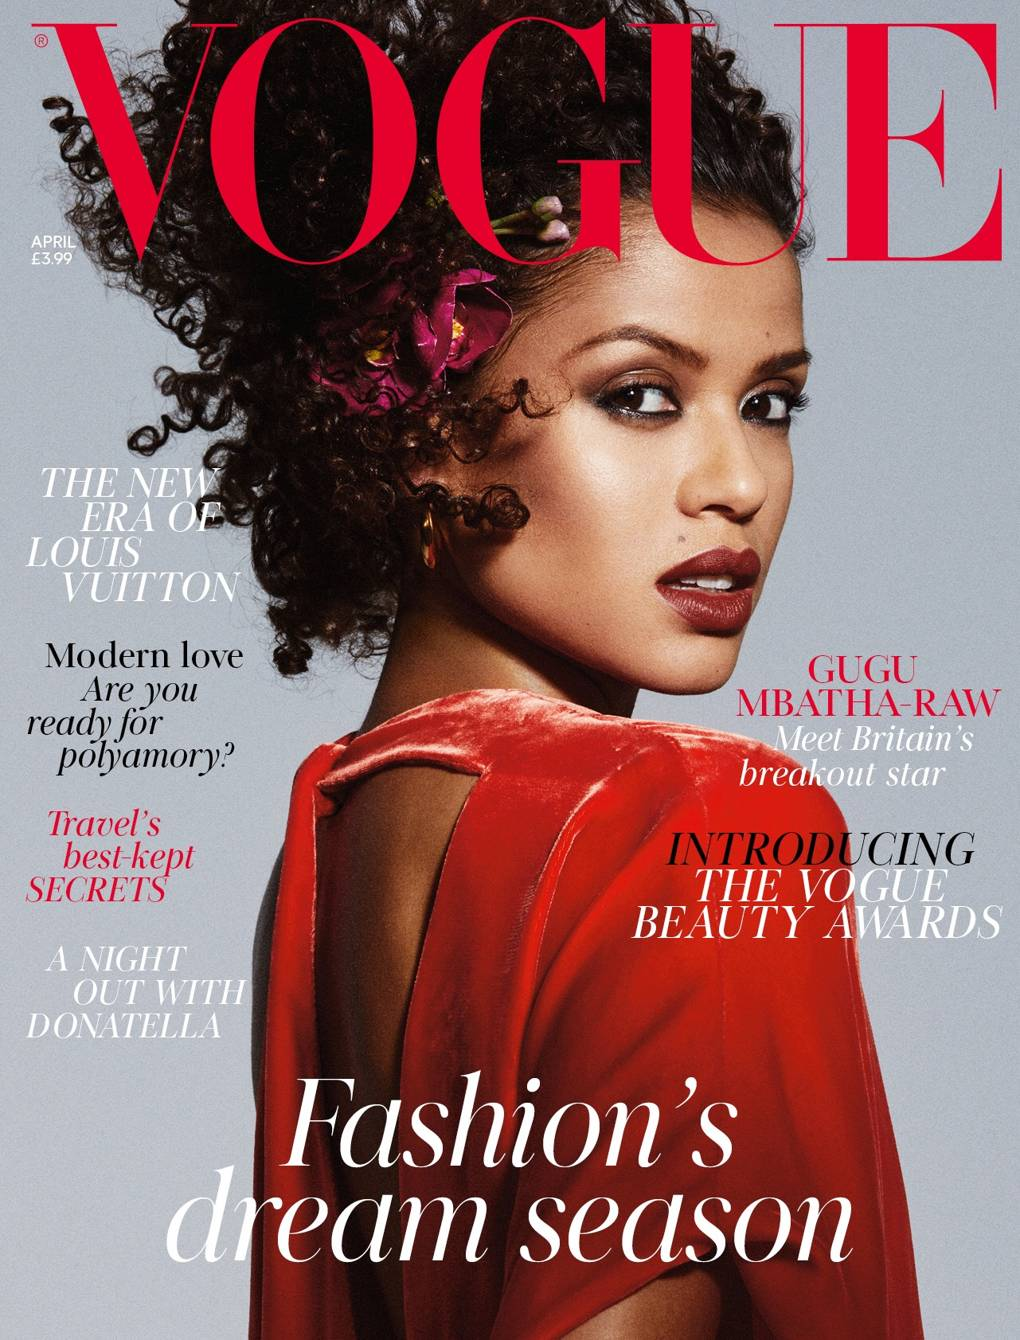 876388fa33 Inside The April 2018 Issue Of Vogue   British Vogue